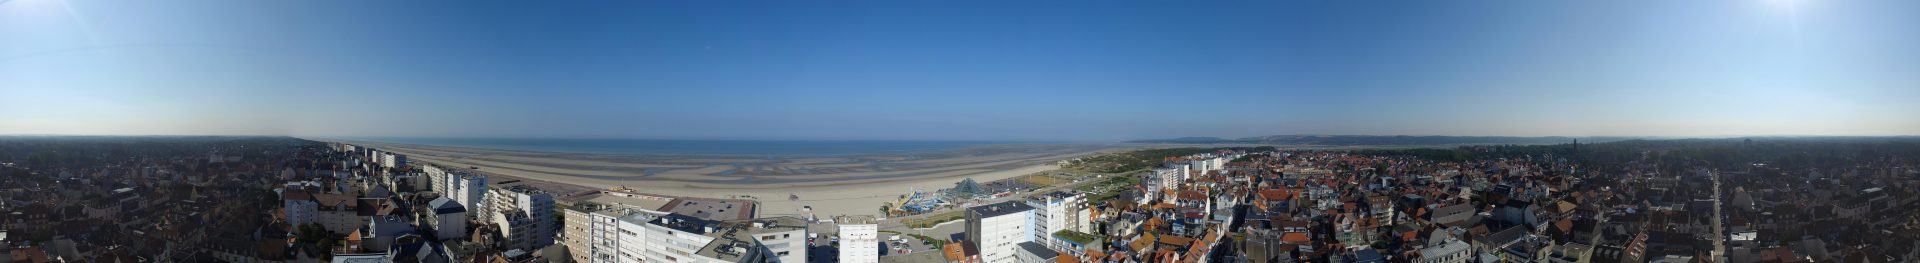 Photo panoramique Le Touquet Paris Plage